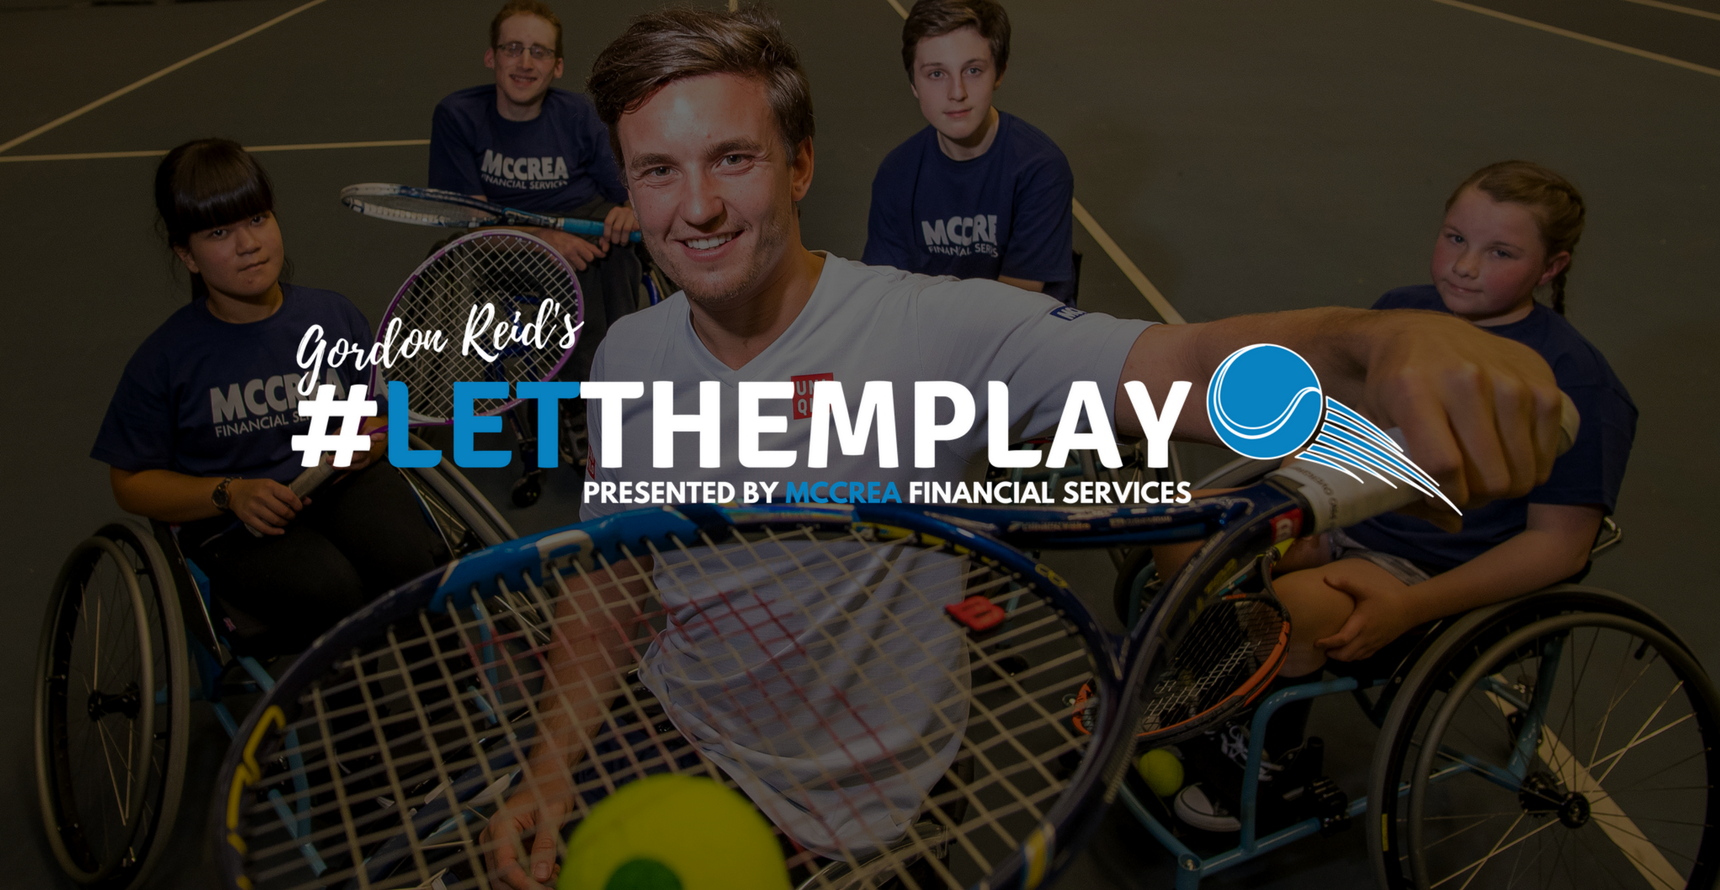 Gordon Reid's #LetThemPlay presented by McCrea Financial Services